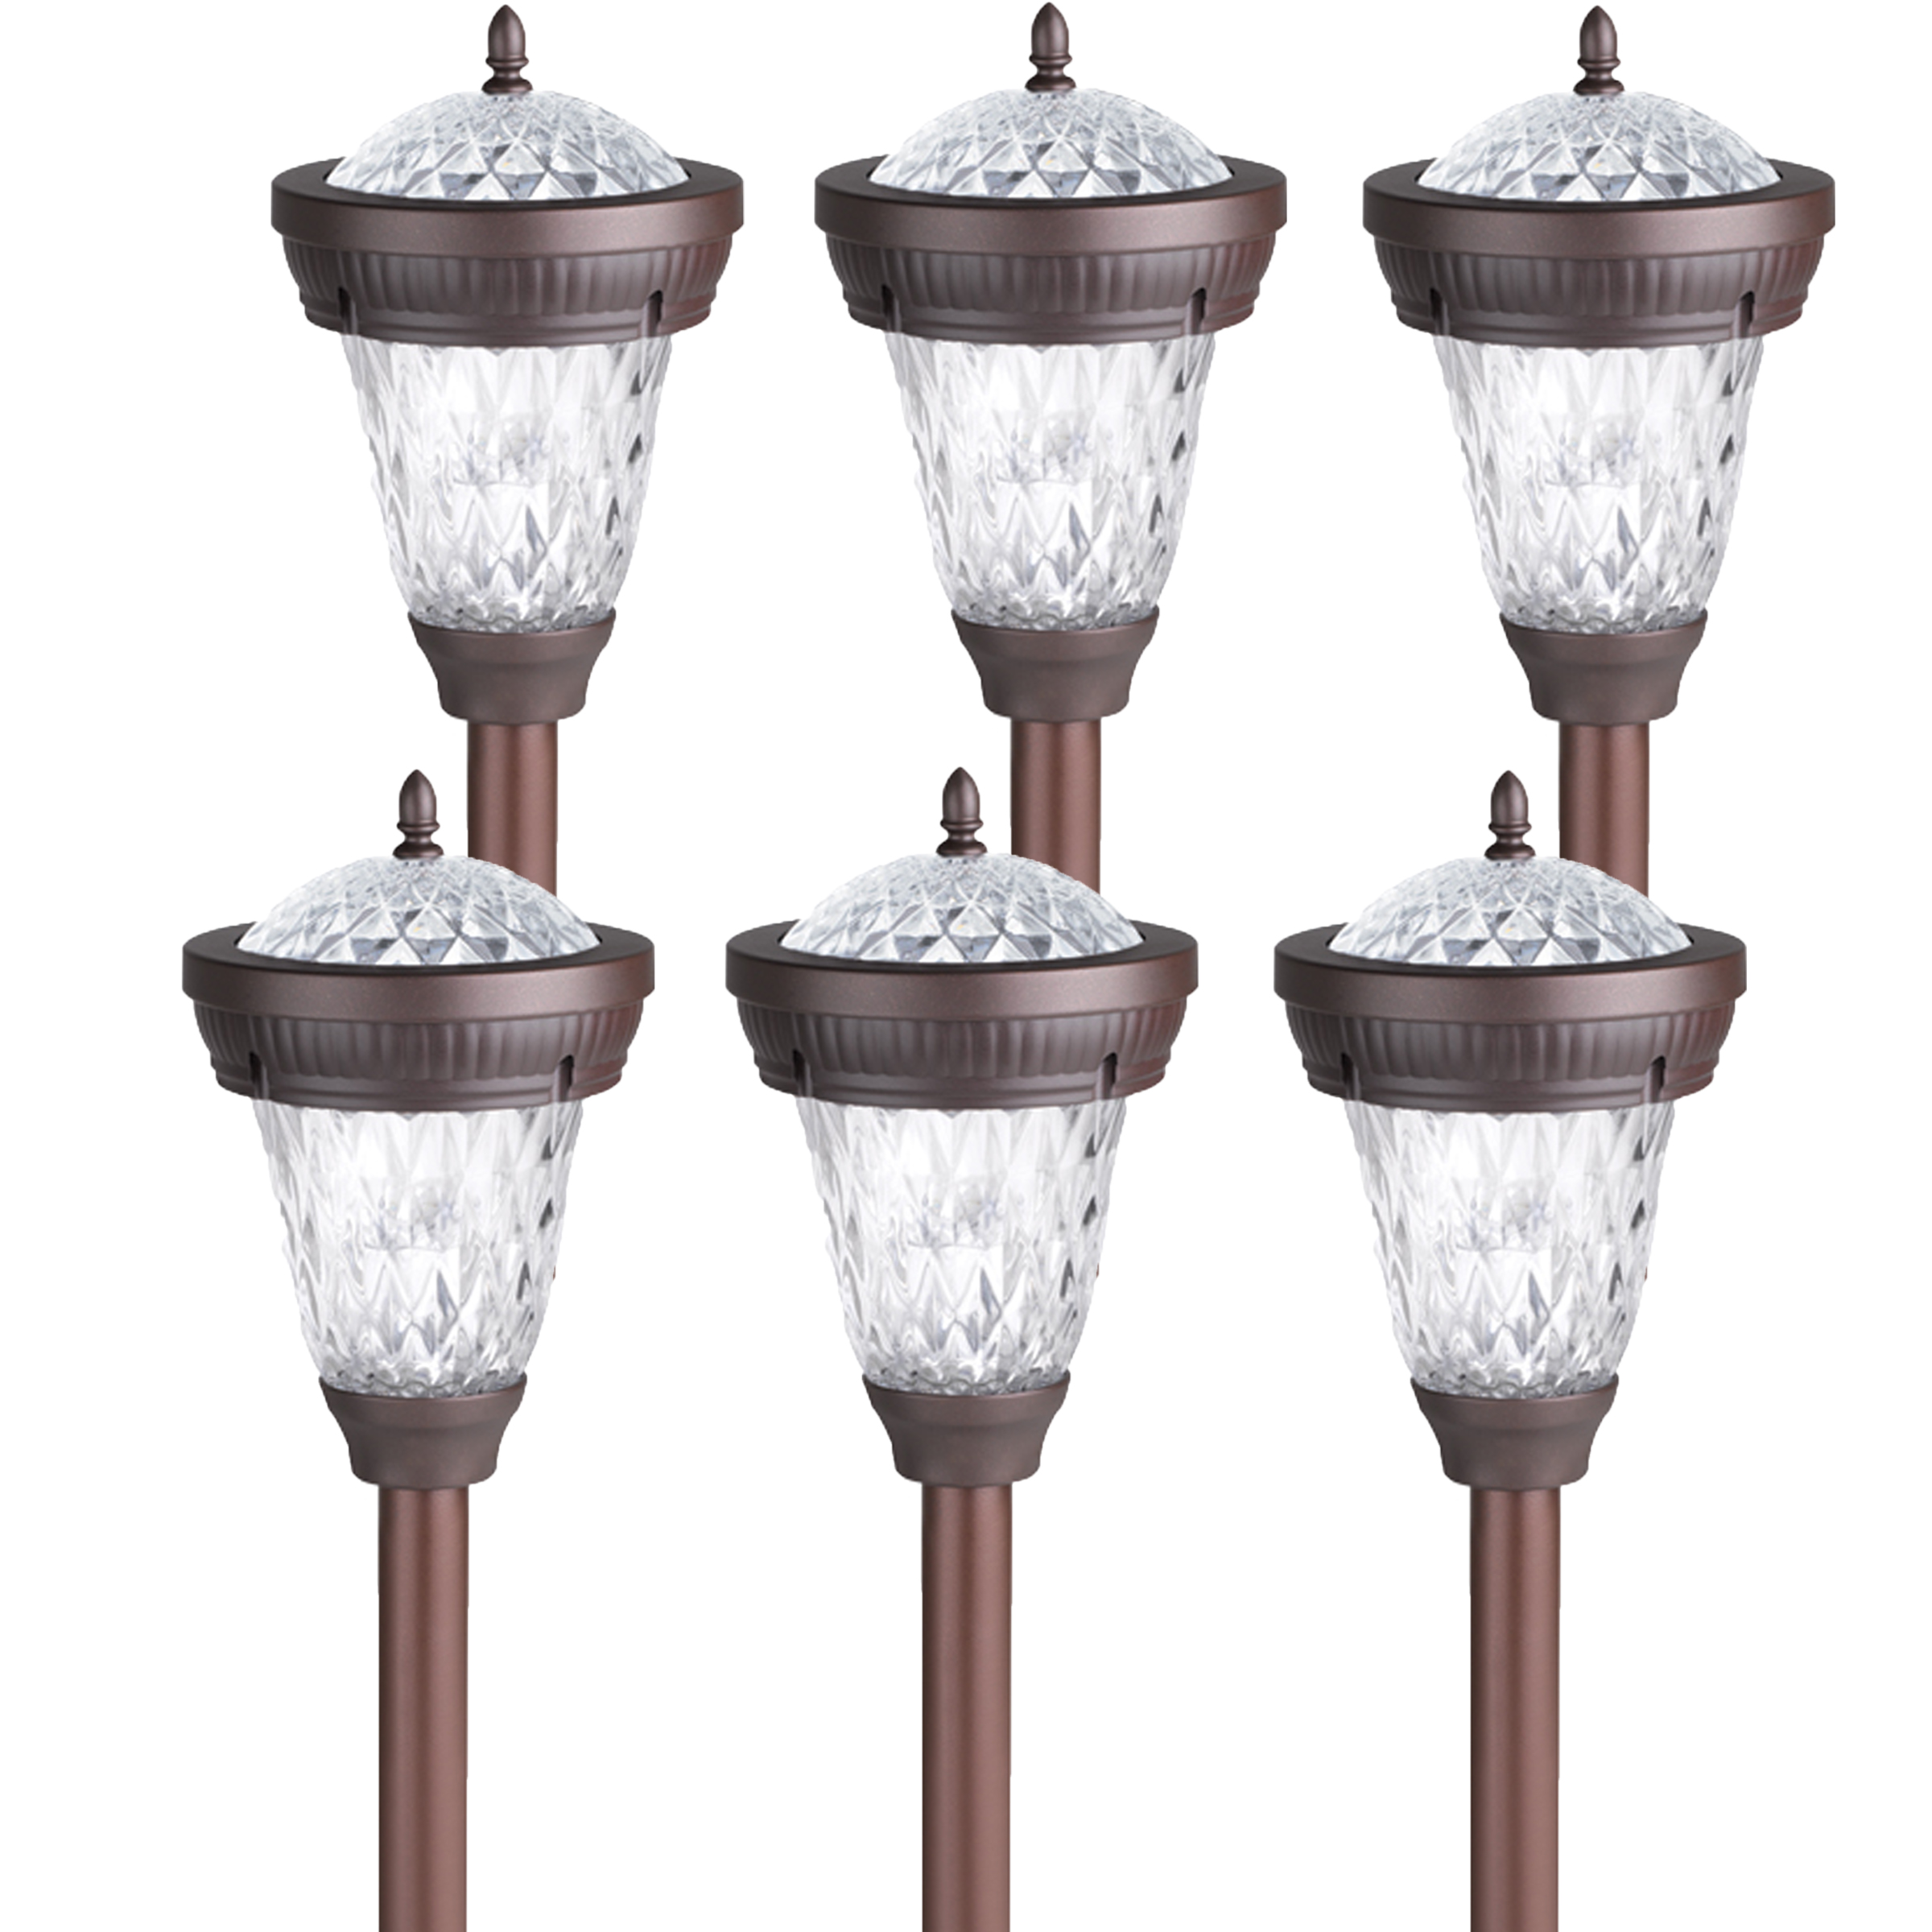 6 pack westinghouse bastille ii solar outdoor garden stake path light bronze. Black Bedroom Furniture Sets. Home Design Ideas